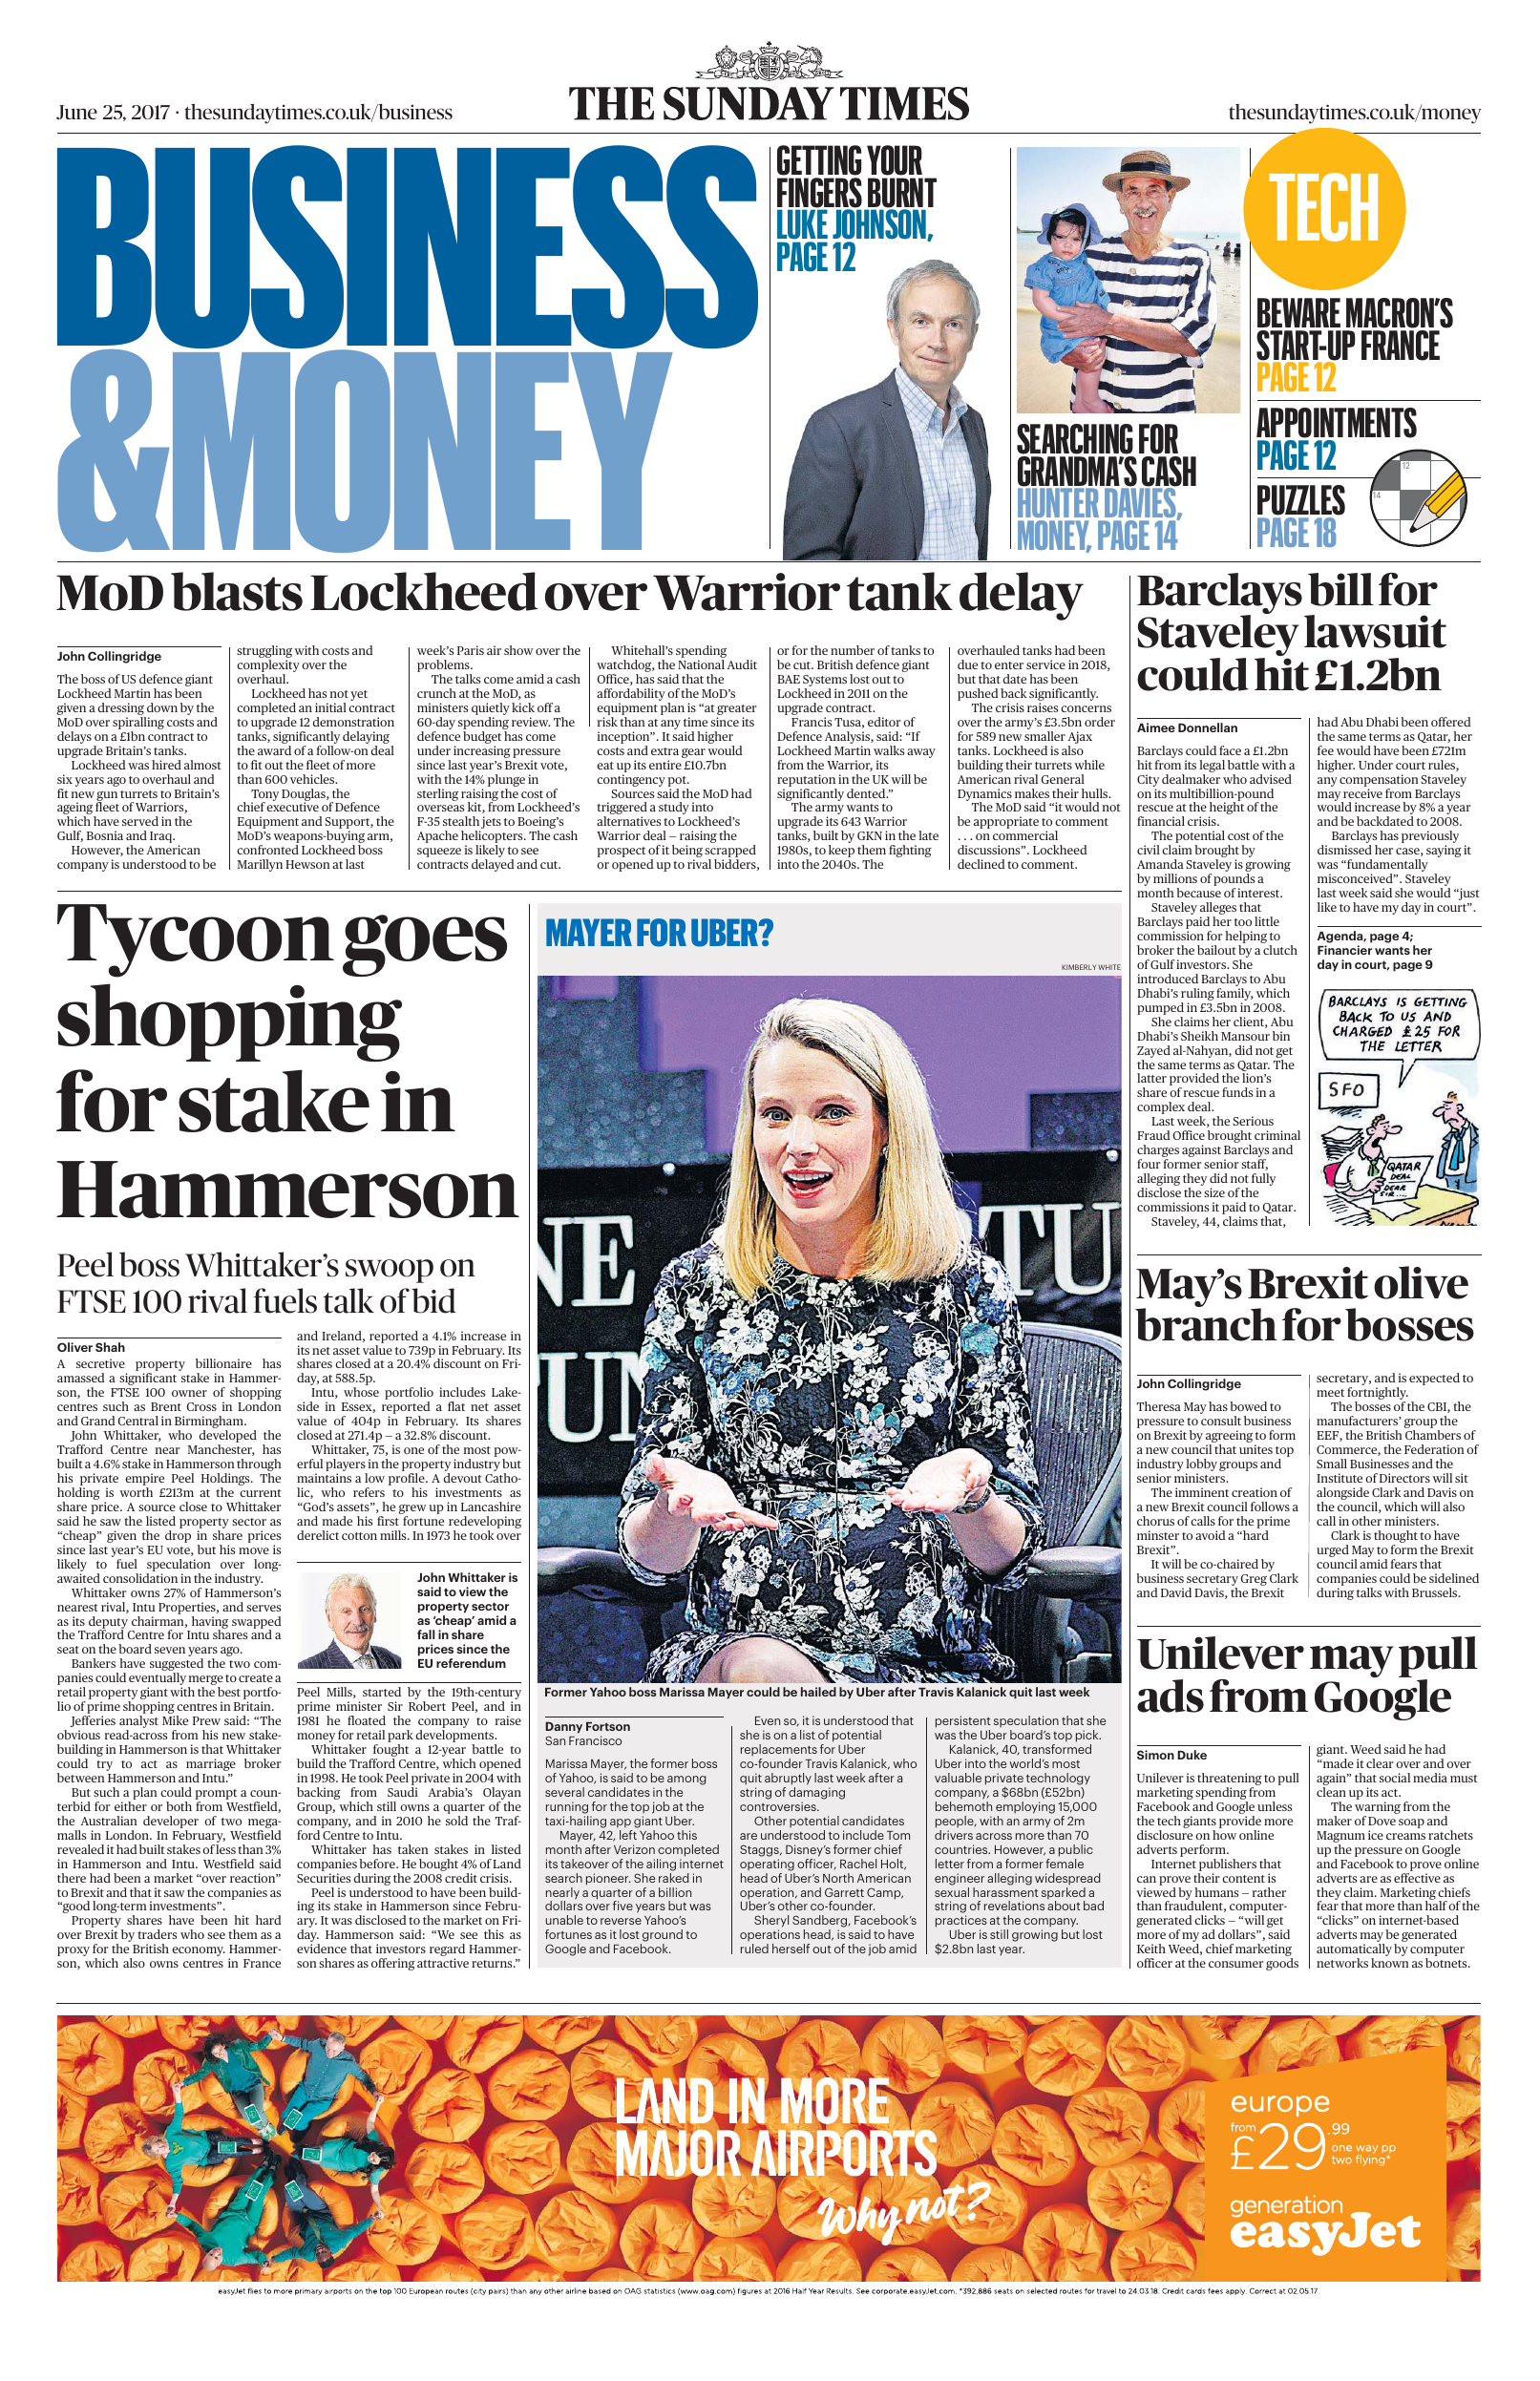 ee2164c614 The Sunday Times Business 25 June 2017